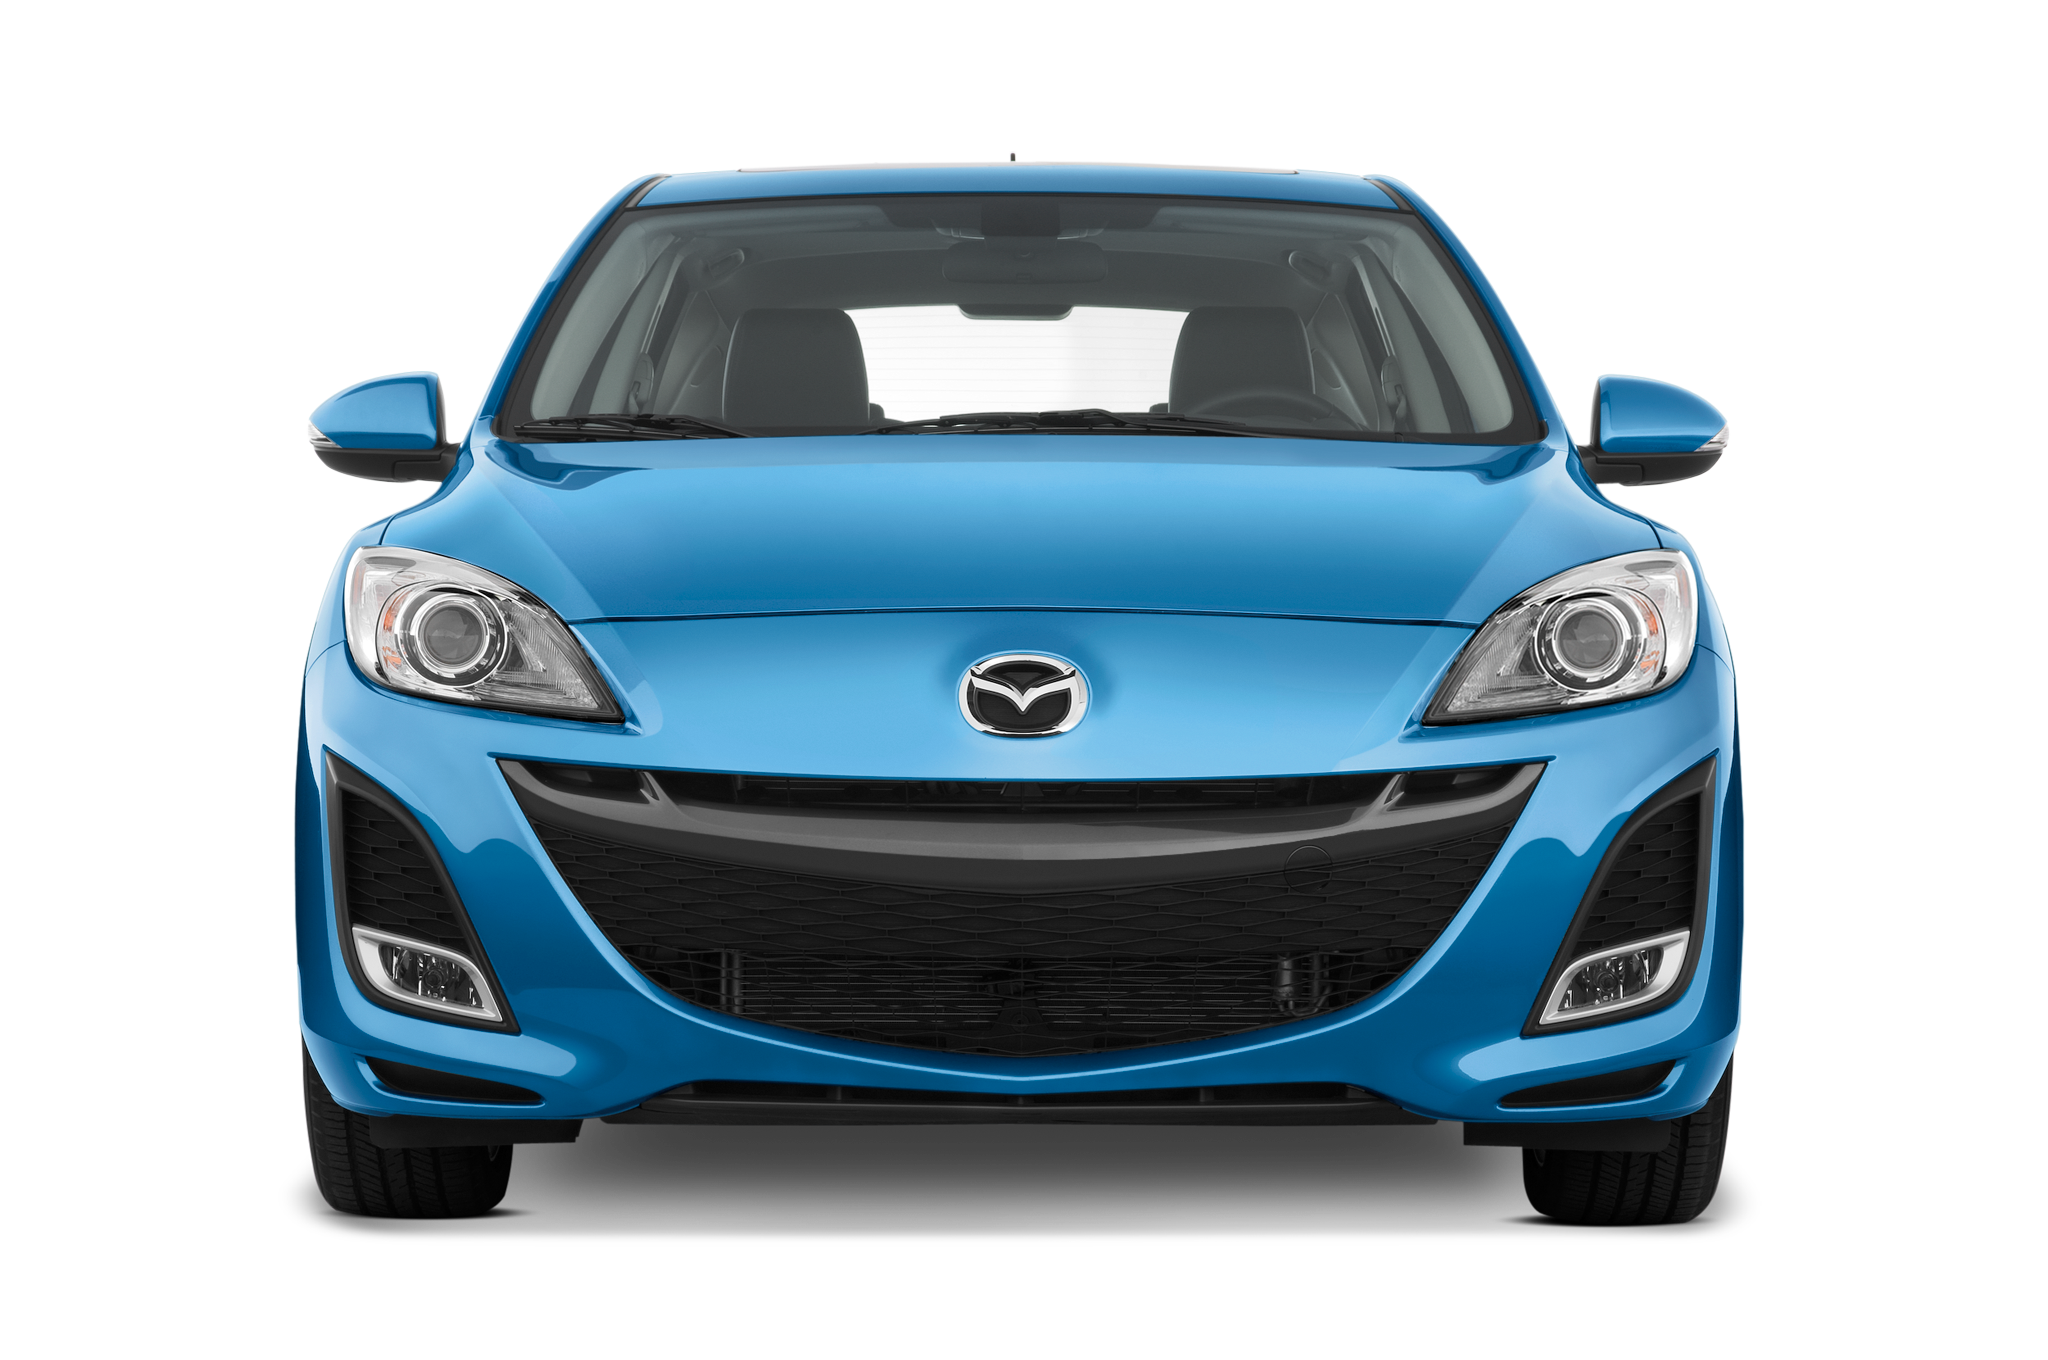 2010 Mazda 3 - Mazda Hatchback Review - Automobile Magazine